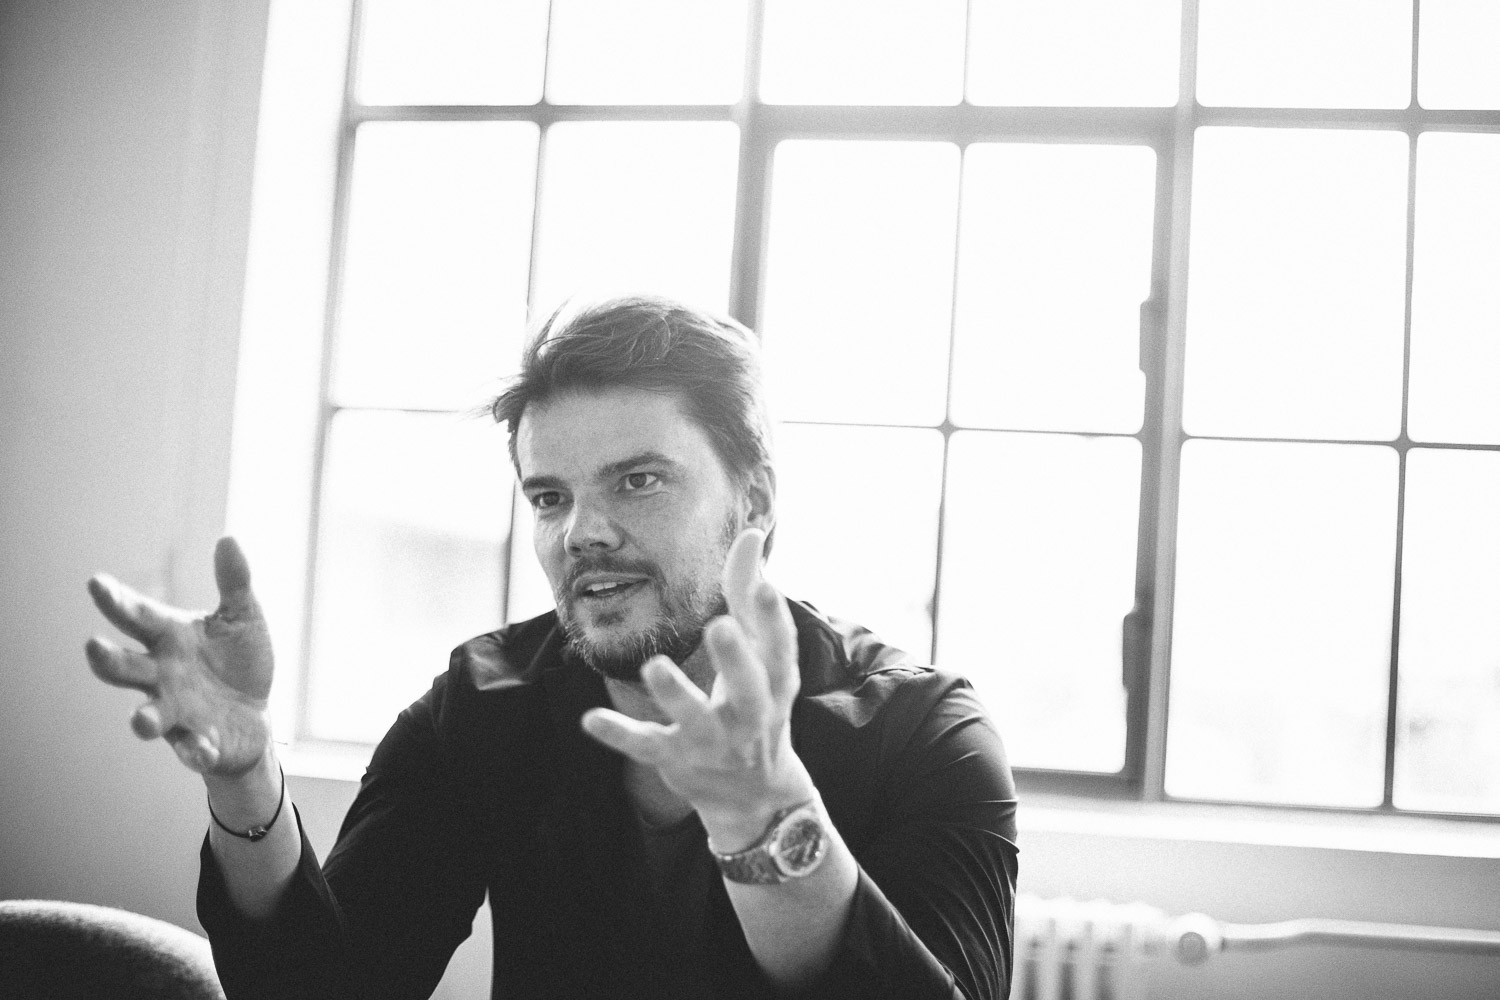 Bjarke Ingels during an interview in his studio